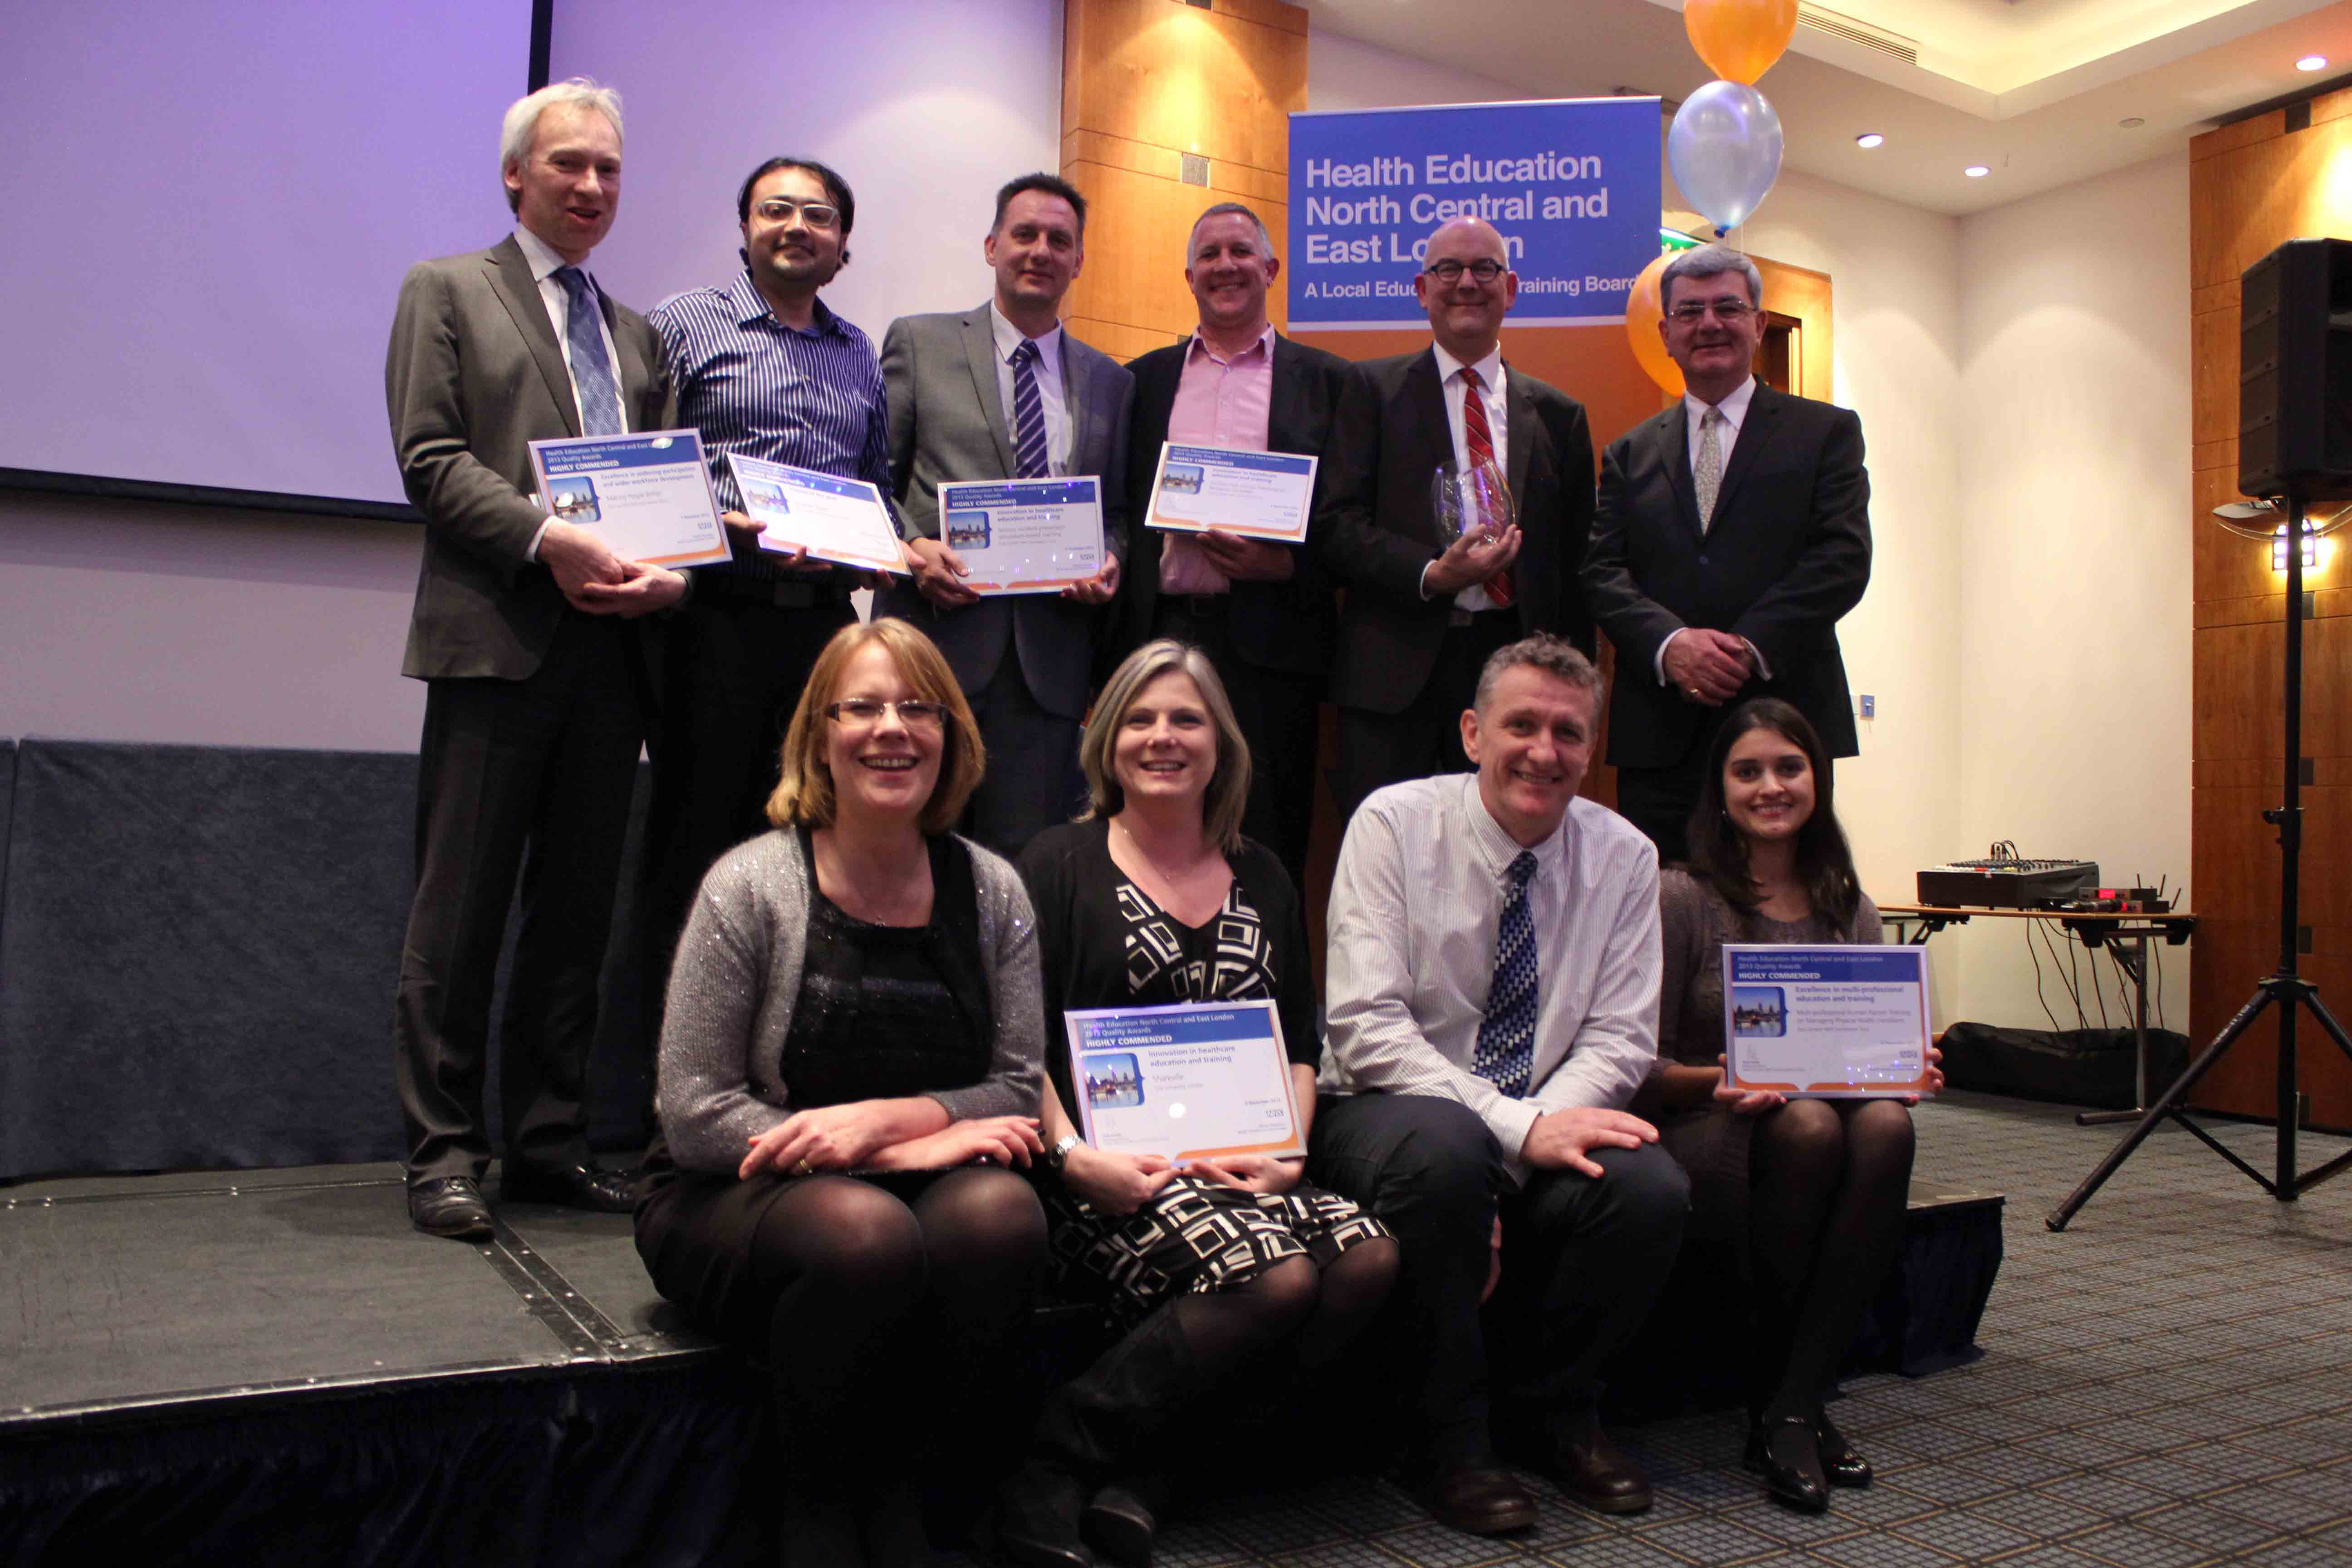 Health Education North Central and East London award winners for Making People Better programme